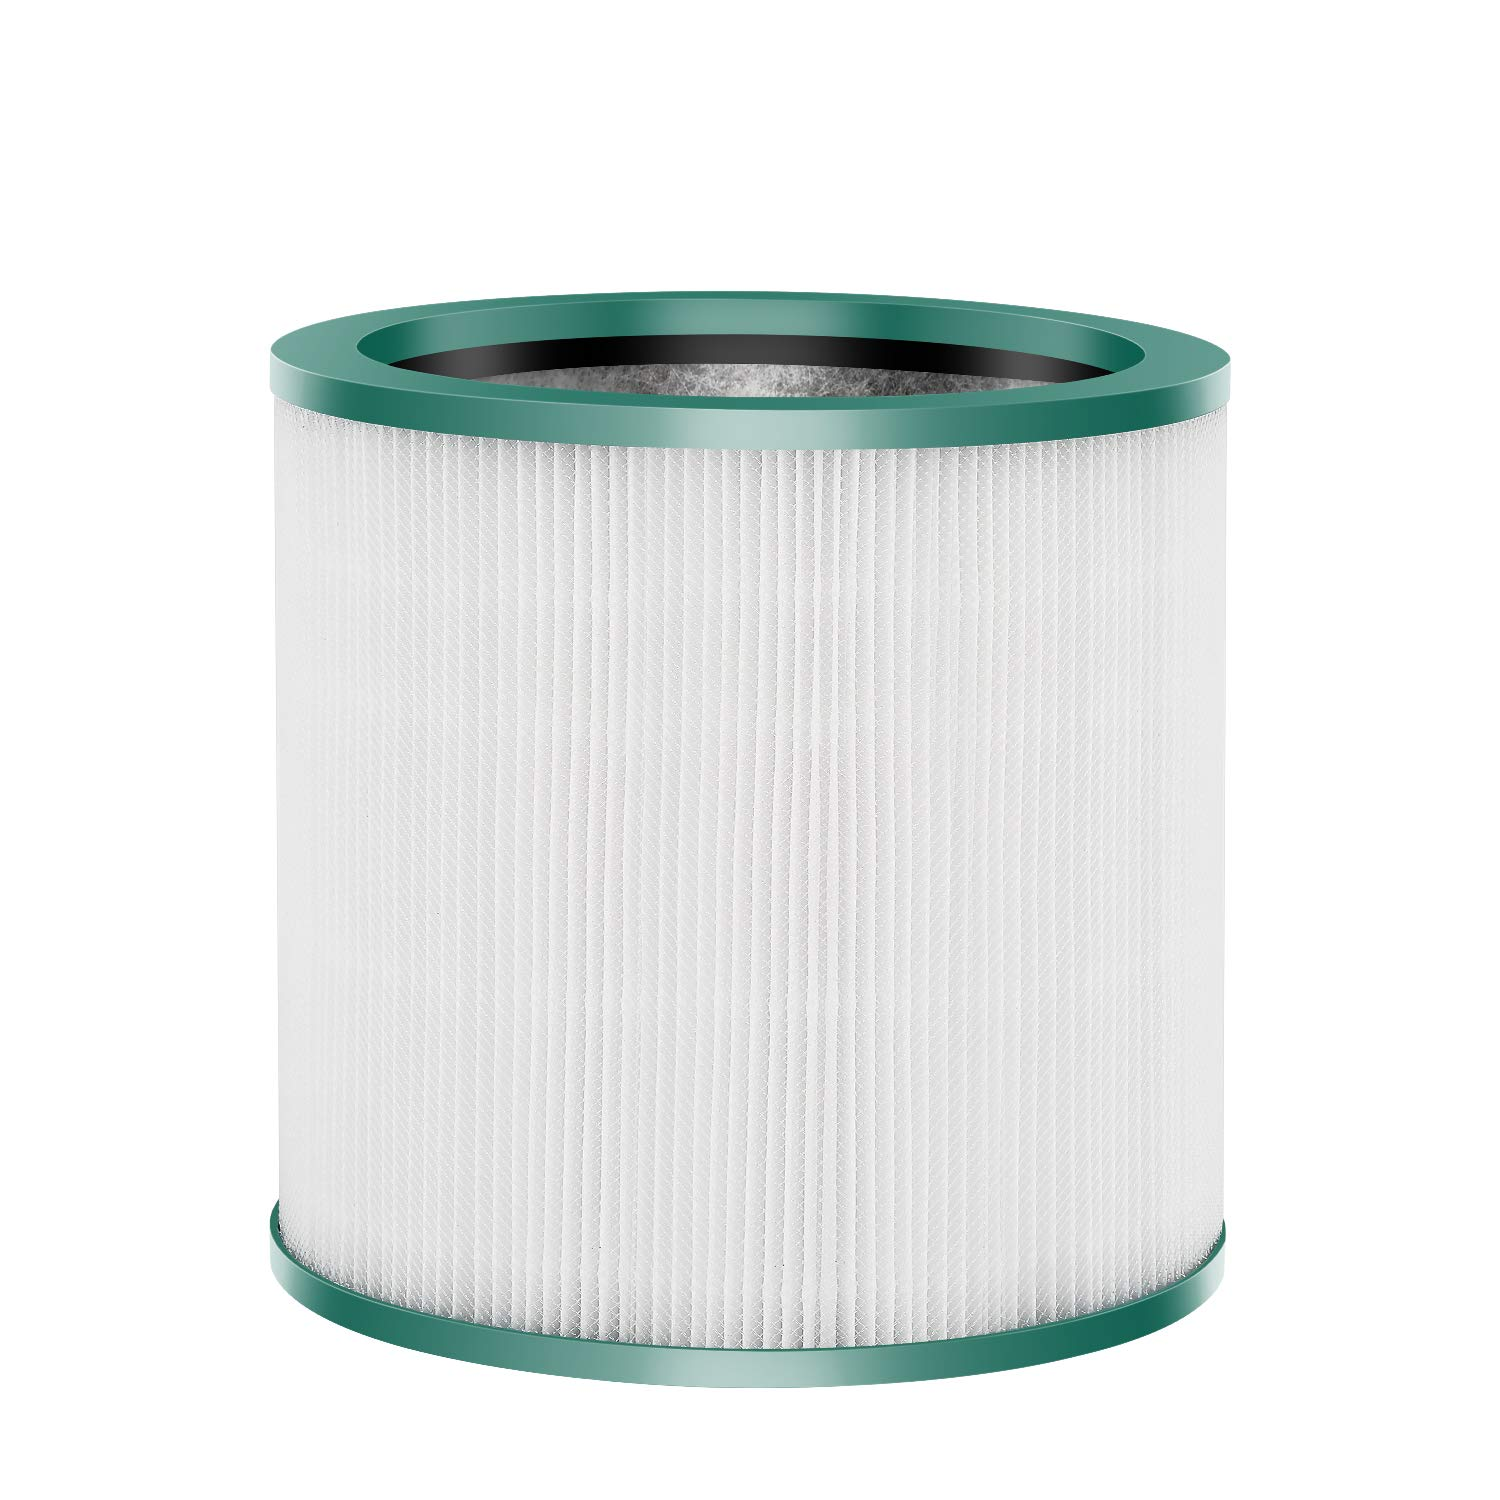 Replacement Filter Compatible Dyson Pure Cool Link Tp02 Tp03 Dyson Tower PurifierReplacement Filter Compatible Dyson Pure Cool Link Tp02 Tp03 Dyson Tower Purifier